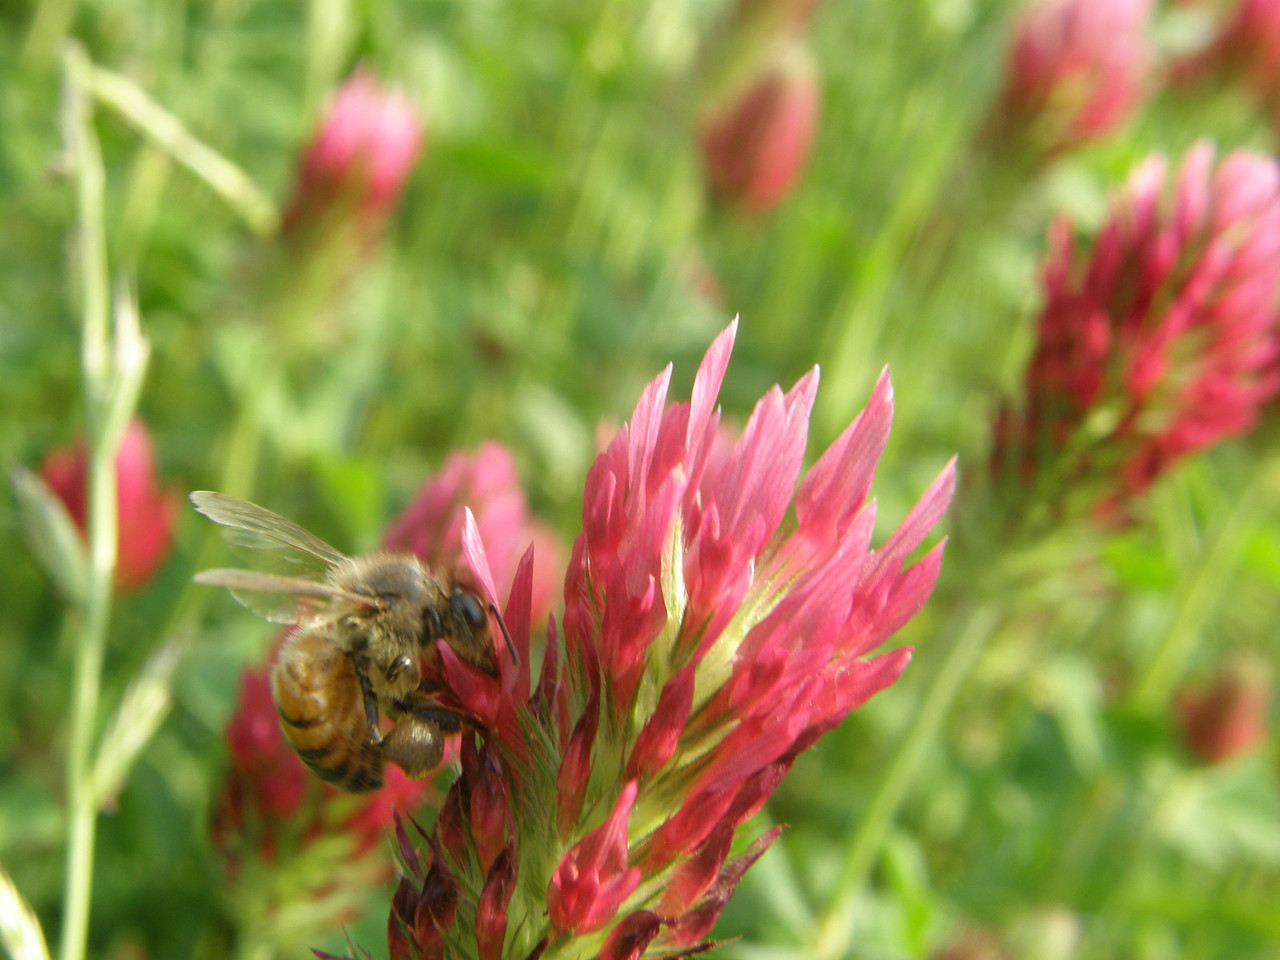 There were hundreds of bees working the clover on this day.